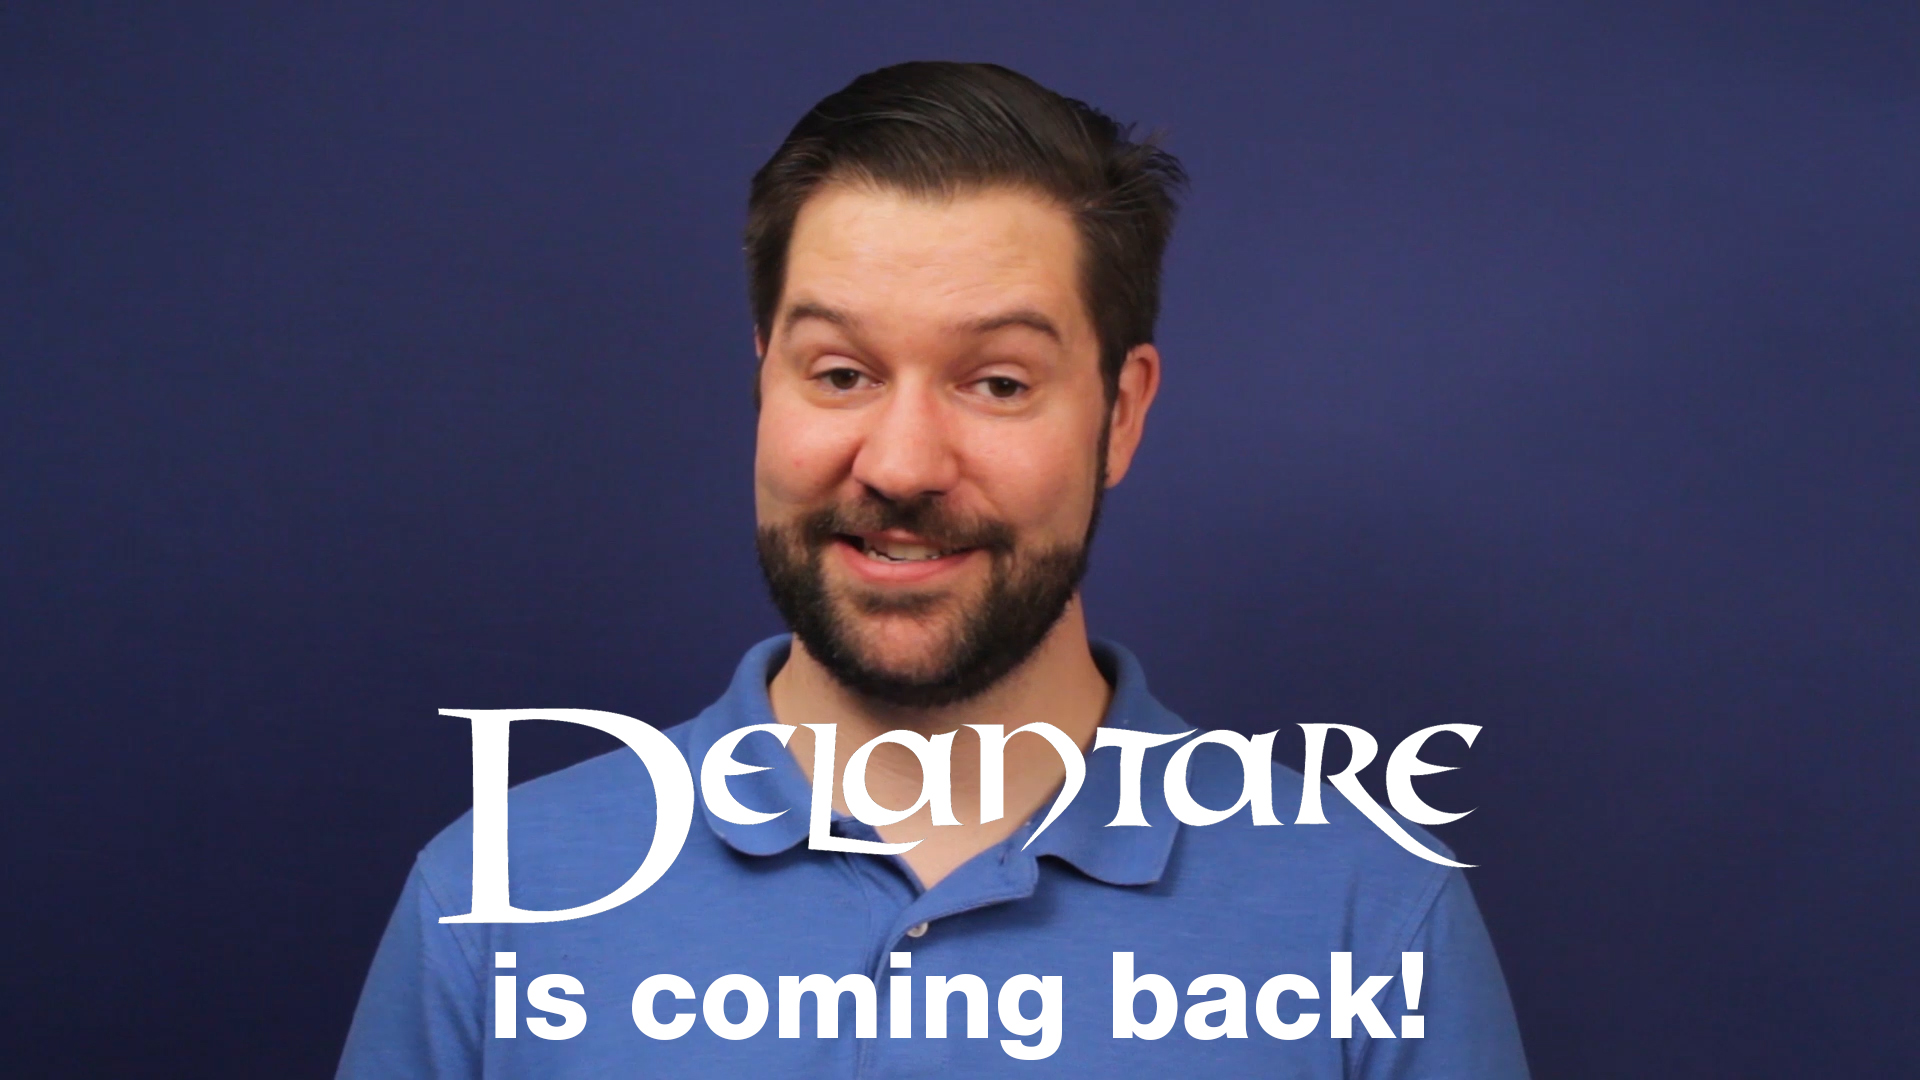 Delantare is Coming Back! | Zack Lawrence